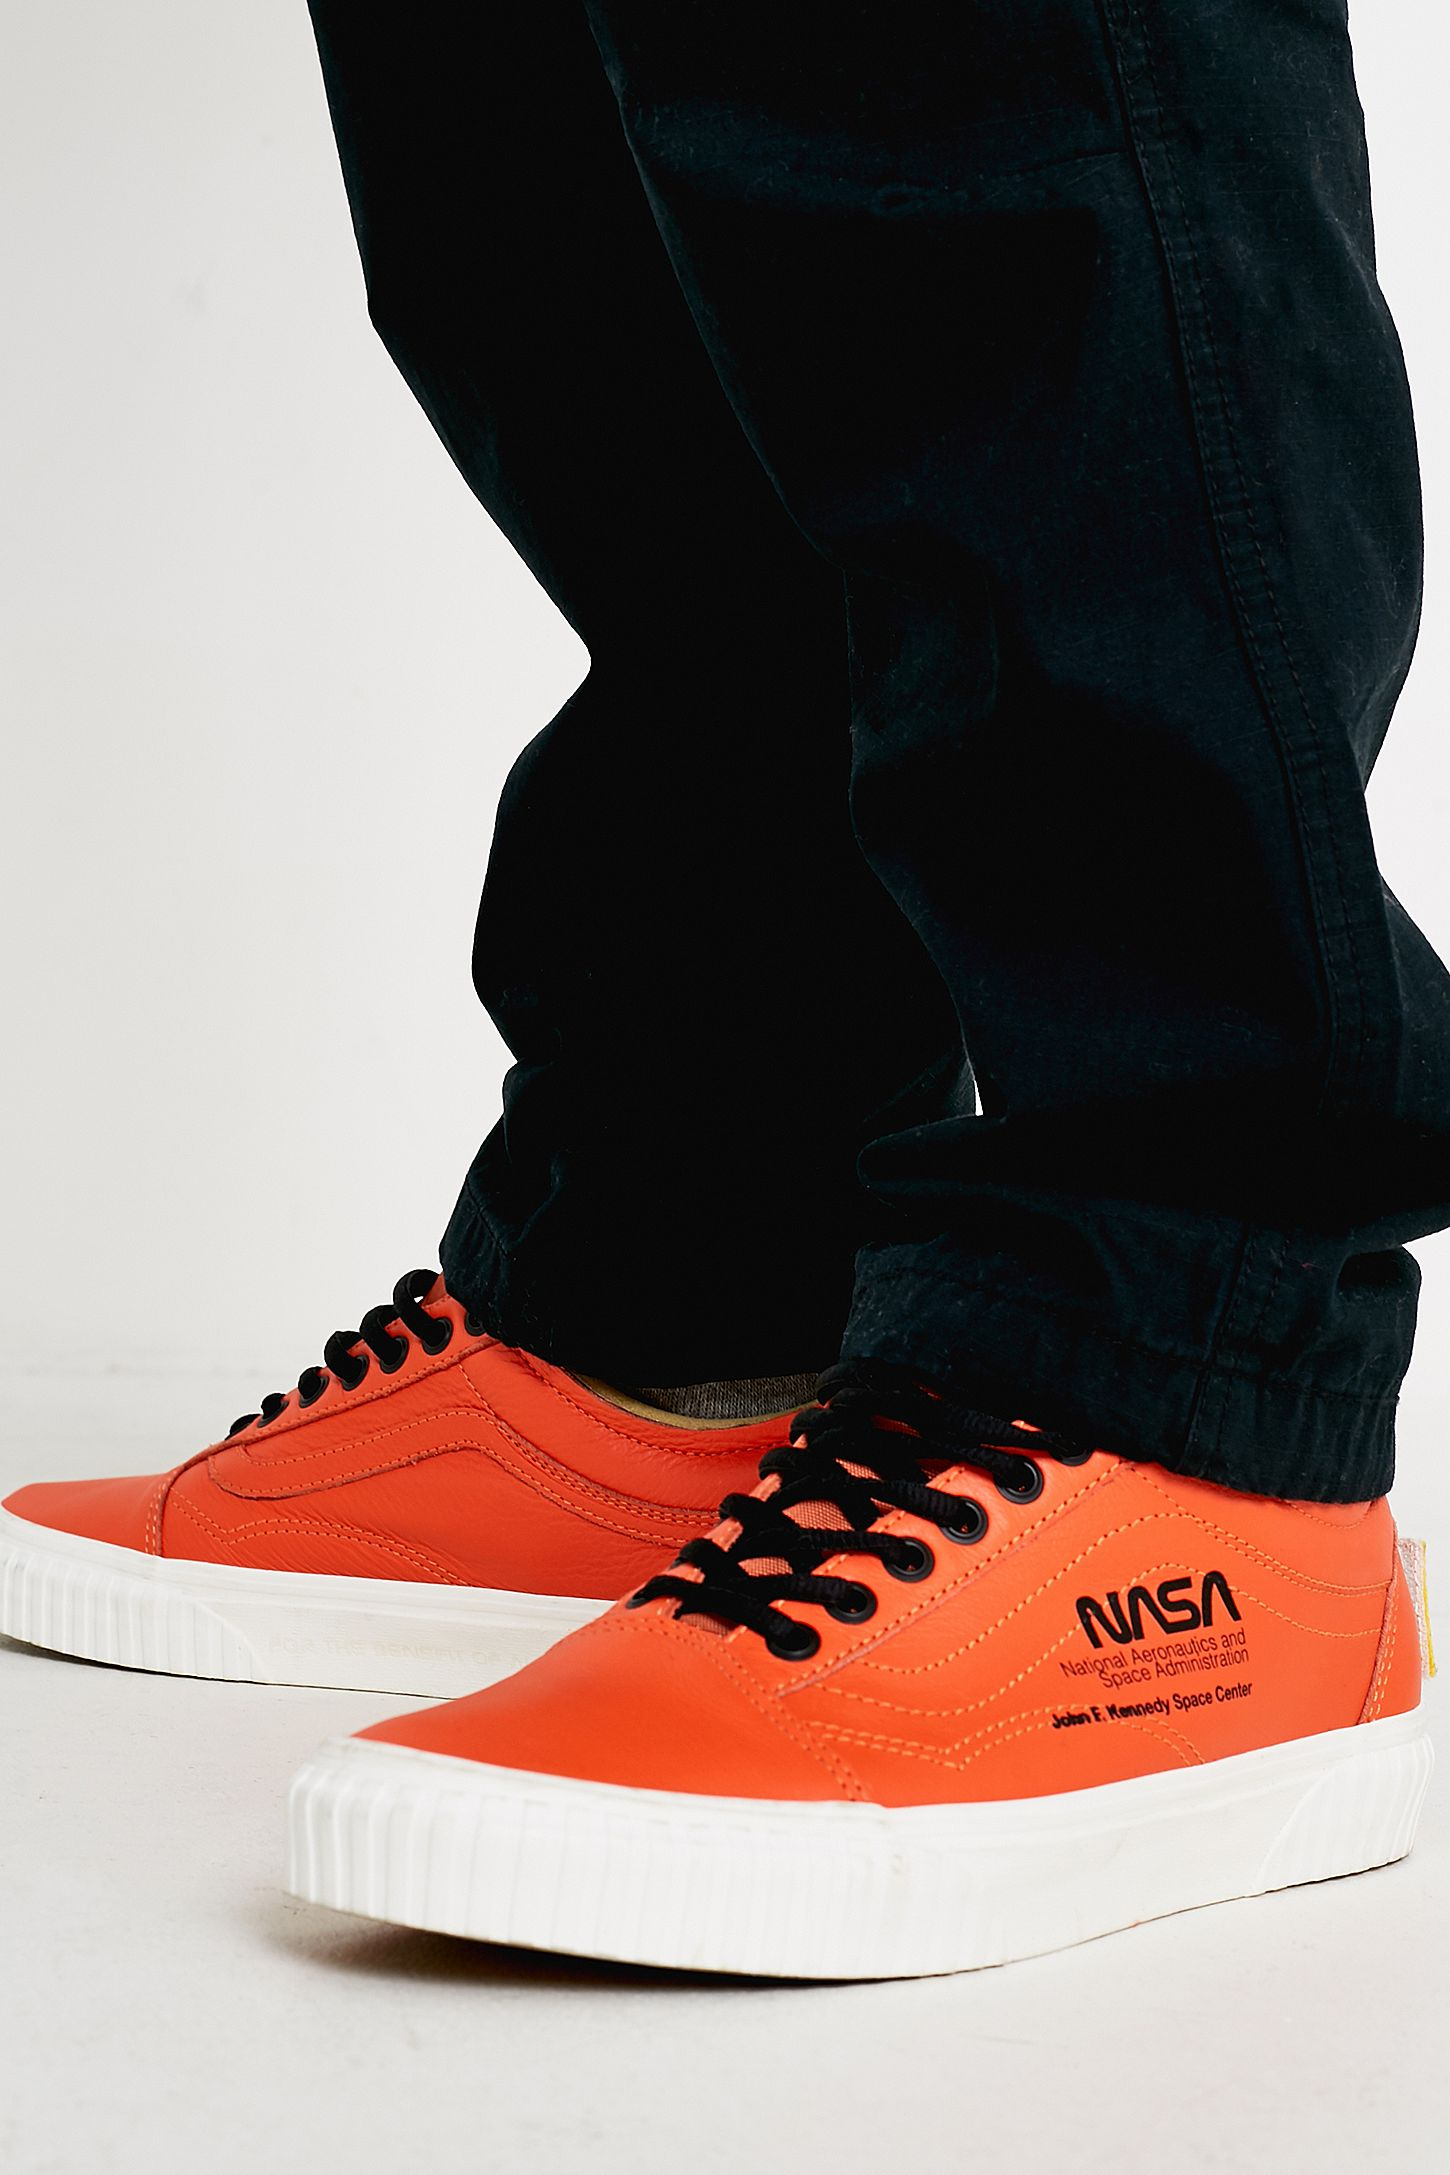 urbanoutfitters vans space voyager old school hommes chaussures